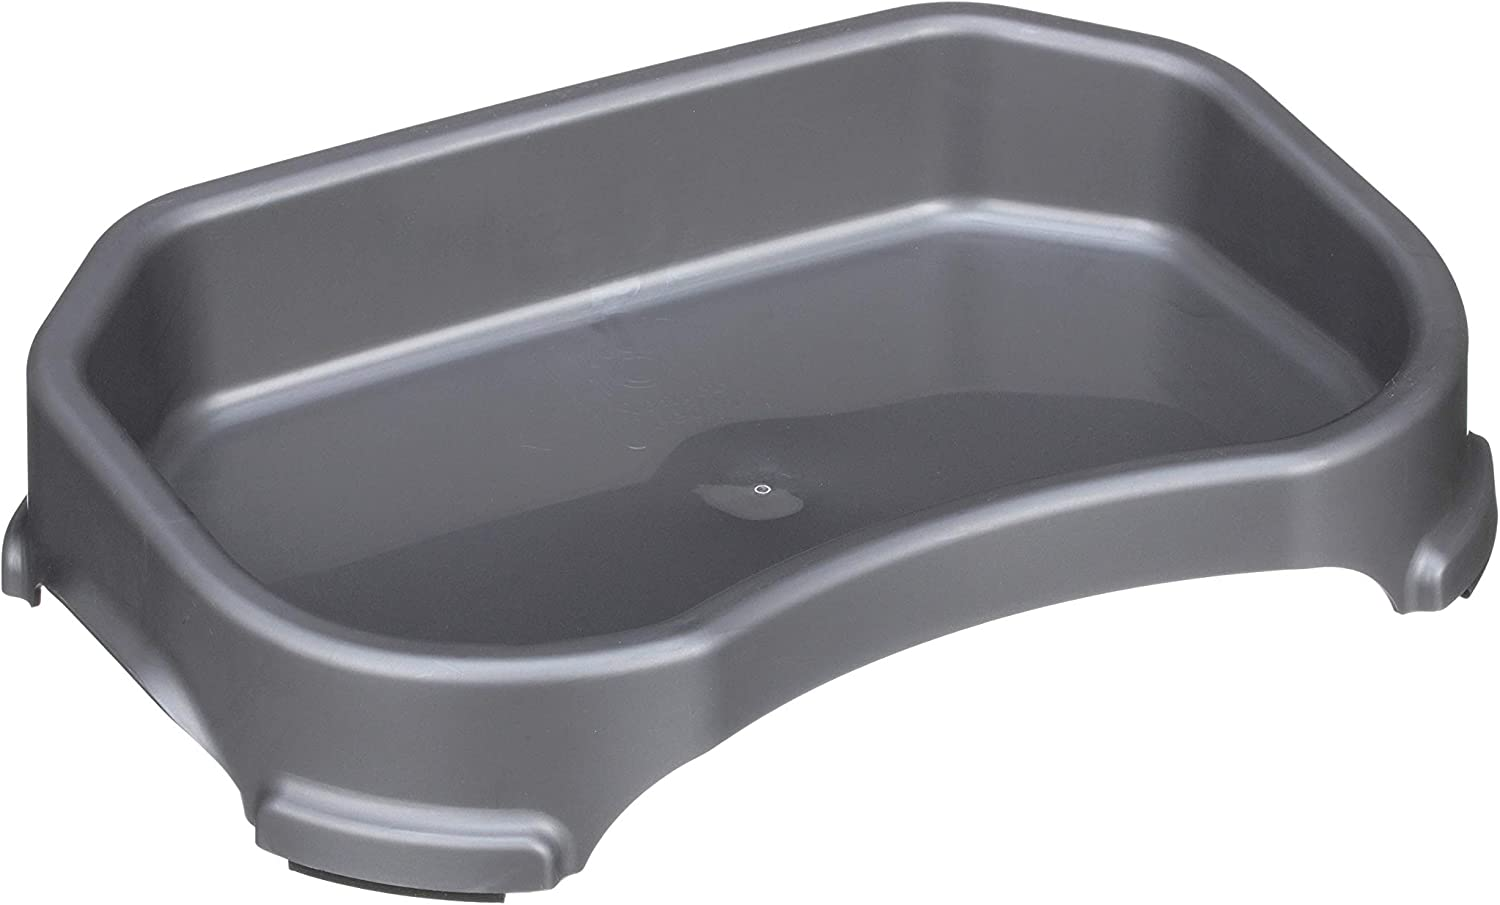 Neater Pet Brands Little Big Bowl for Small Dogs - Large Surface Area Pet Water or Food Bowls (8 Cups/64 oz, Gunmetal)